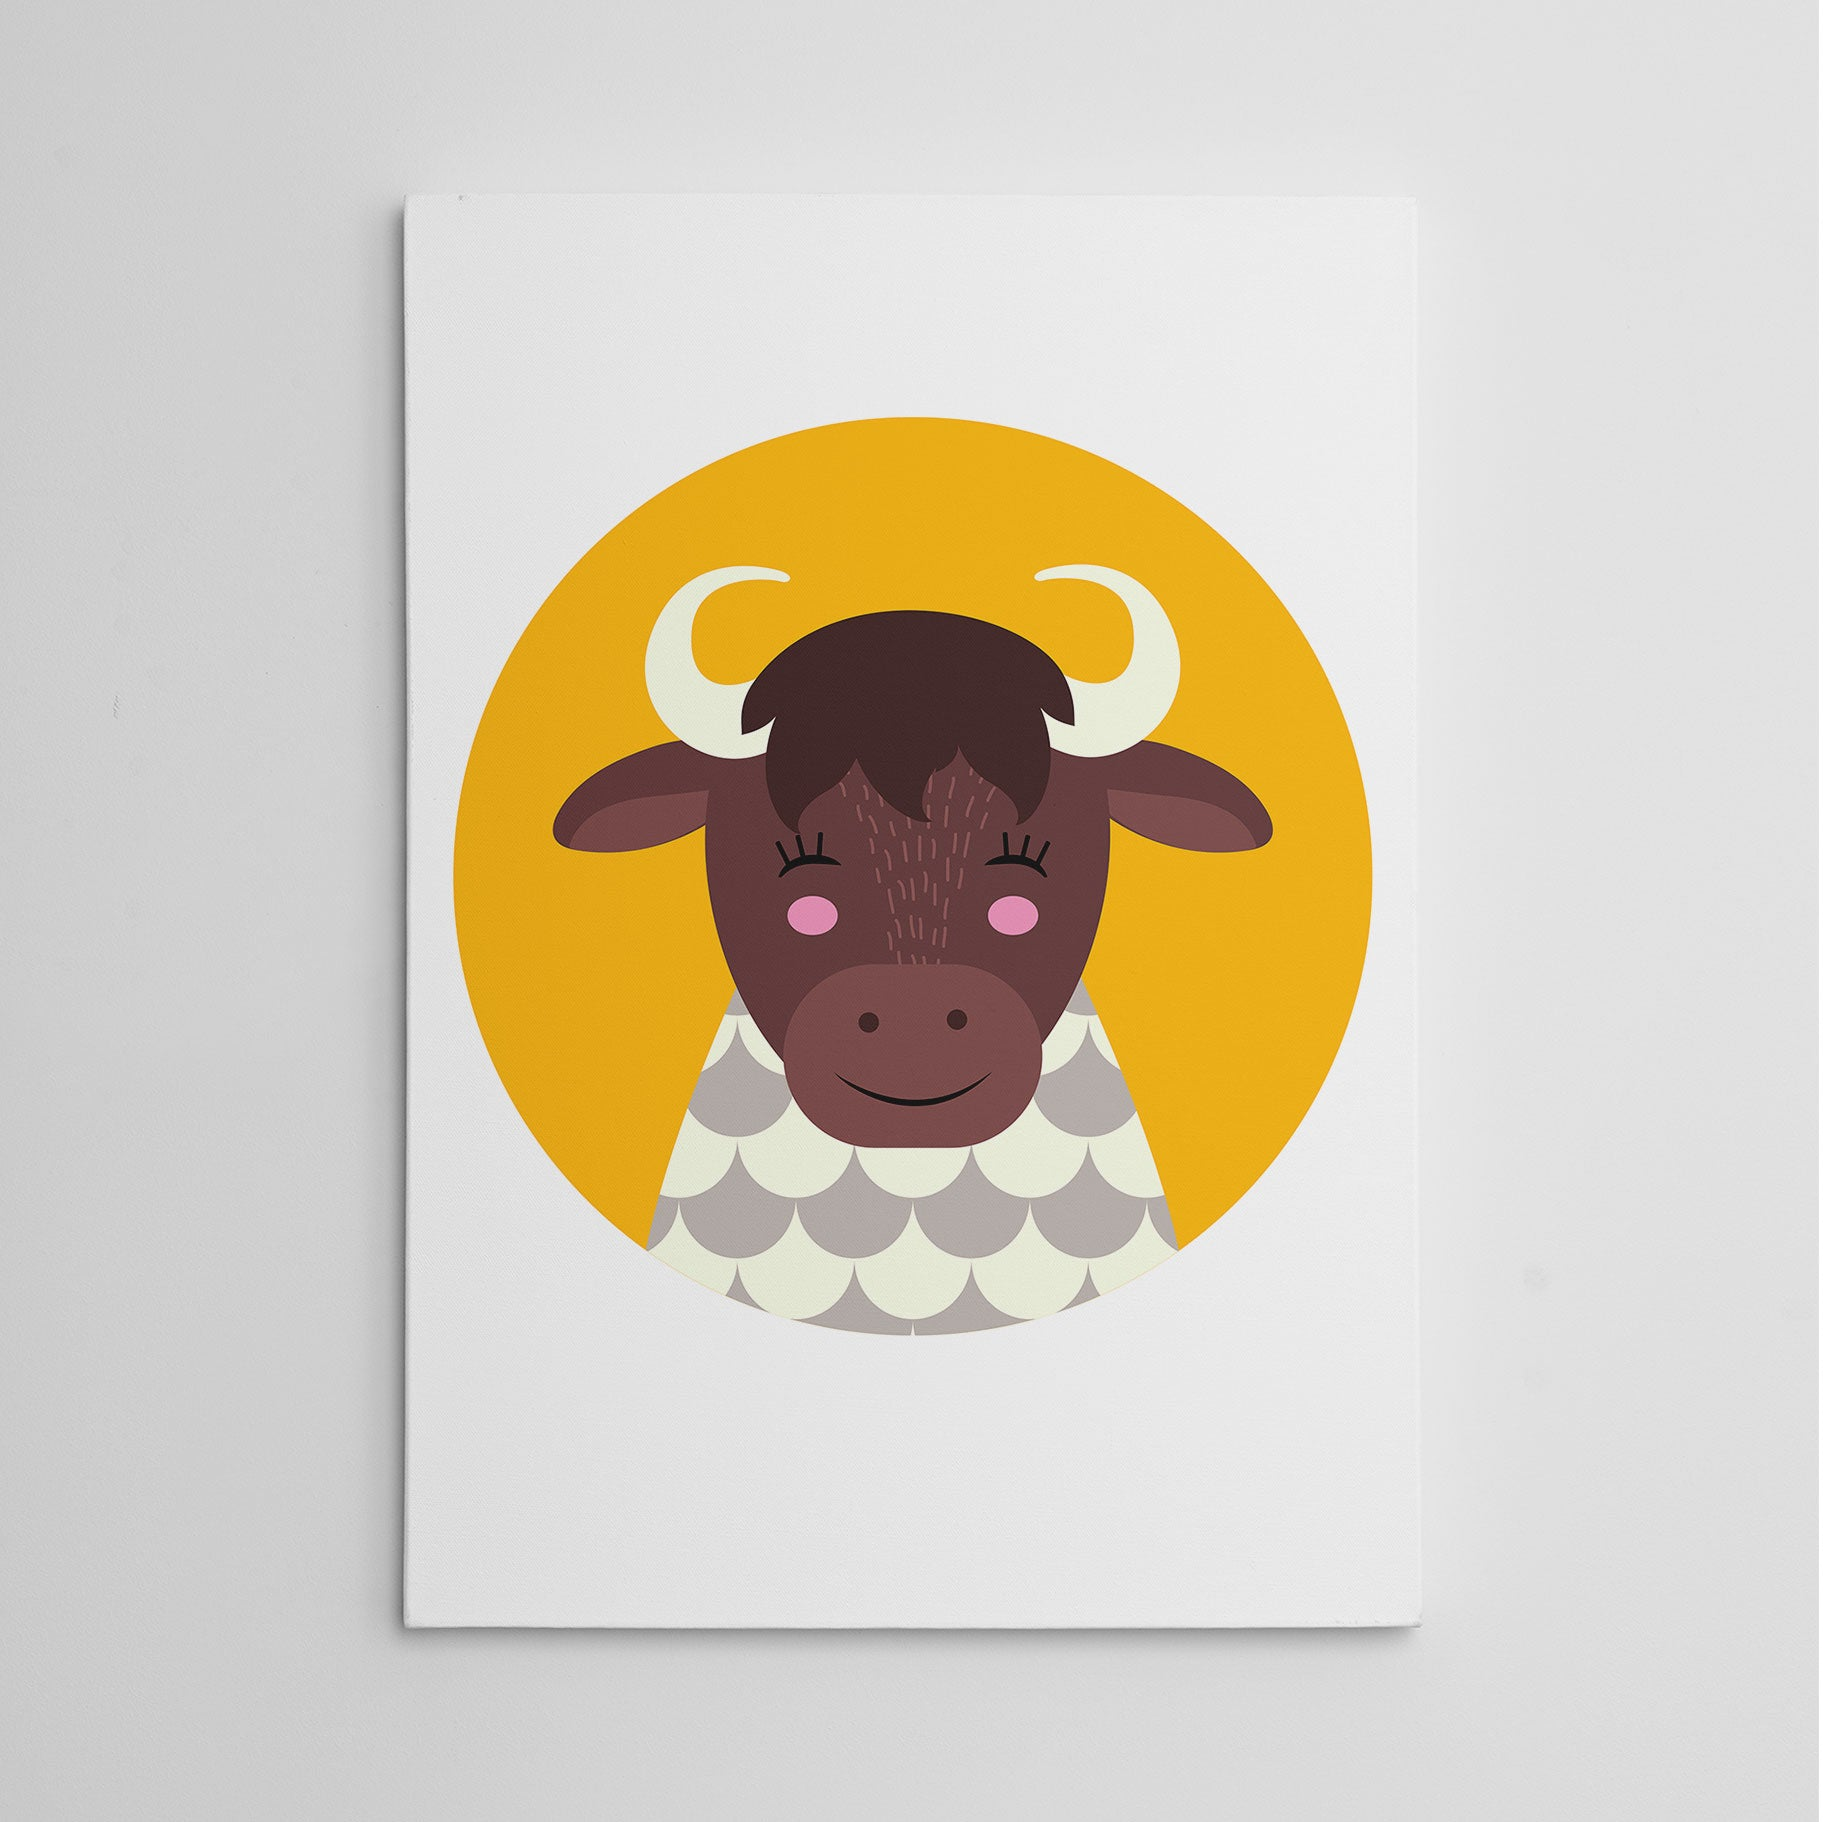 Nursery canvas print with a smiley cow in a yellow circle.